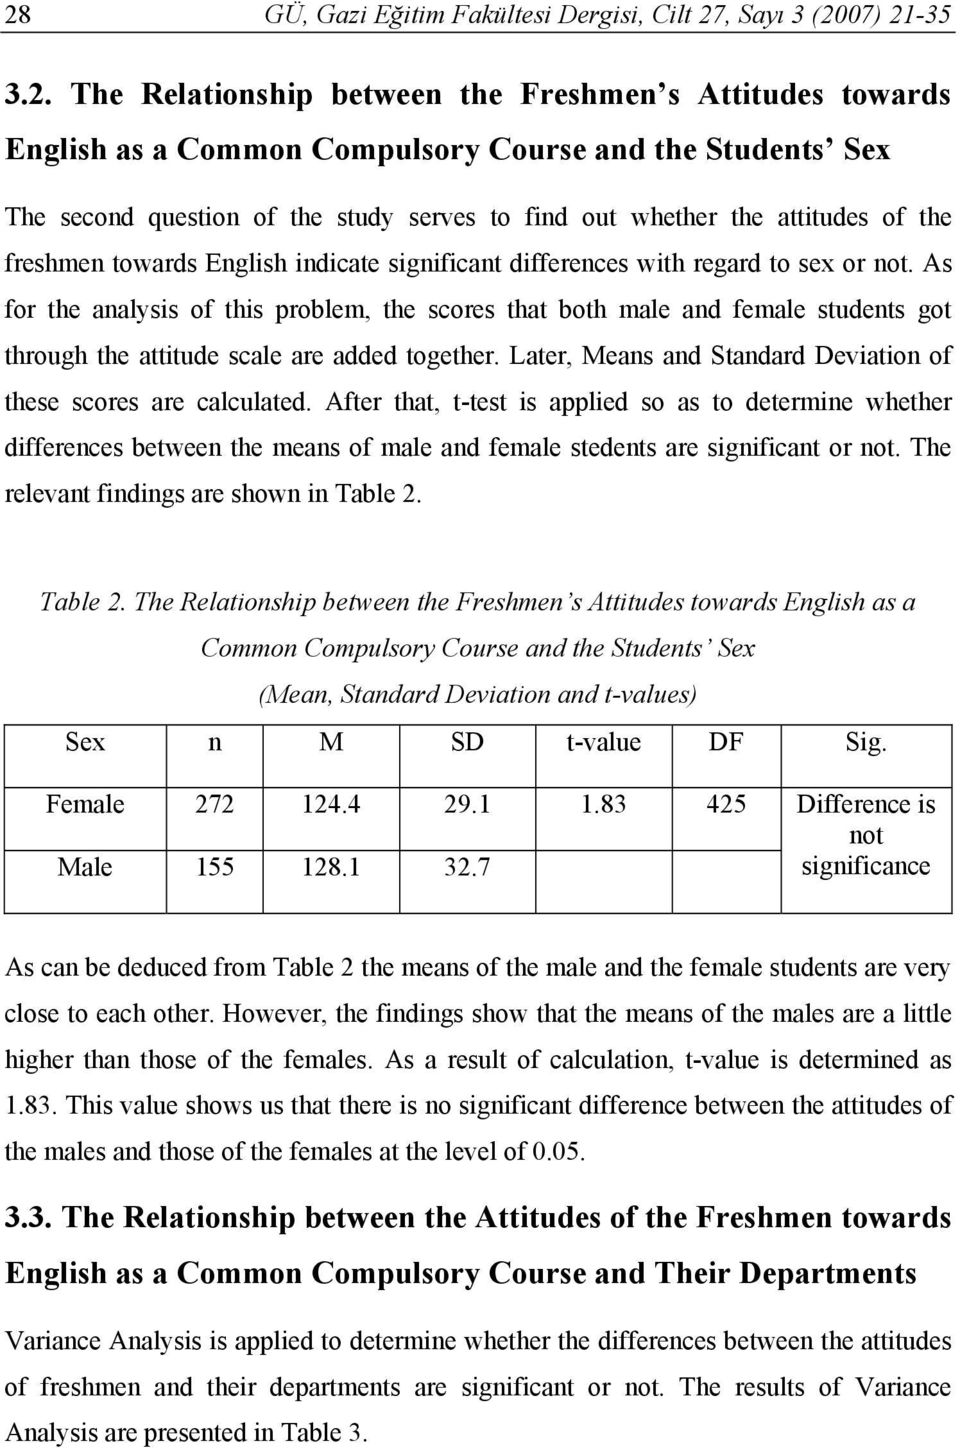 As for the analysis of this problem, the scores that both male and female students got through the attitude scale are added together.